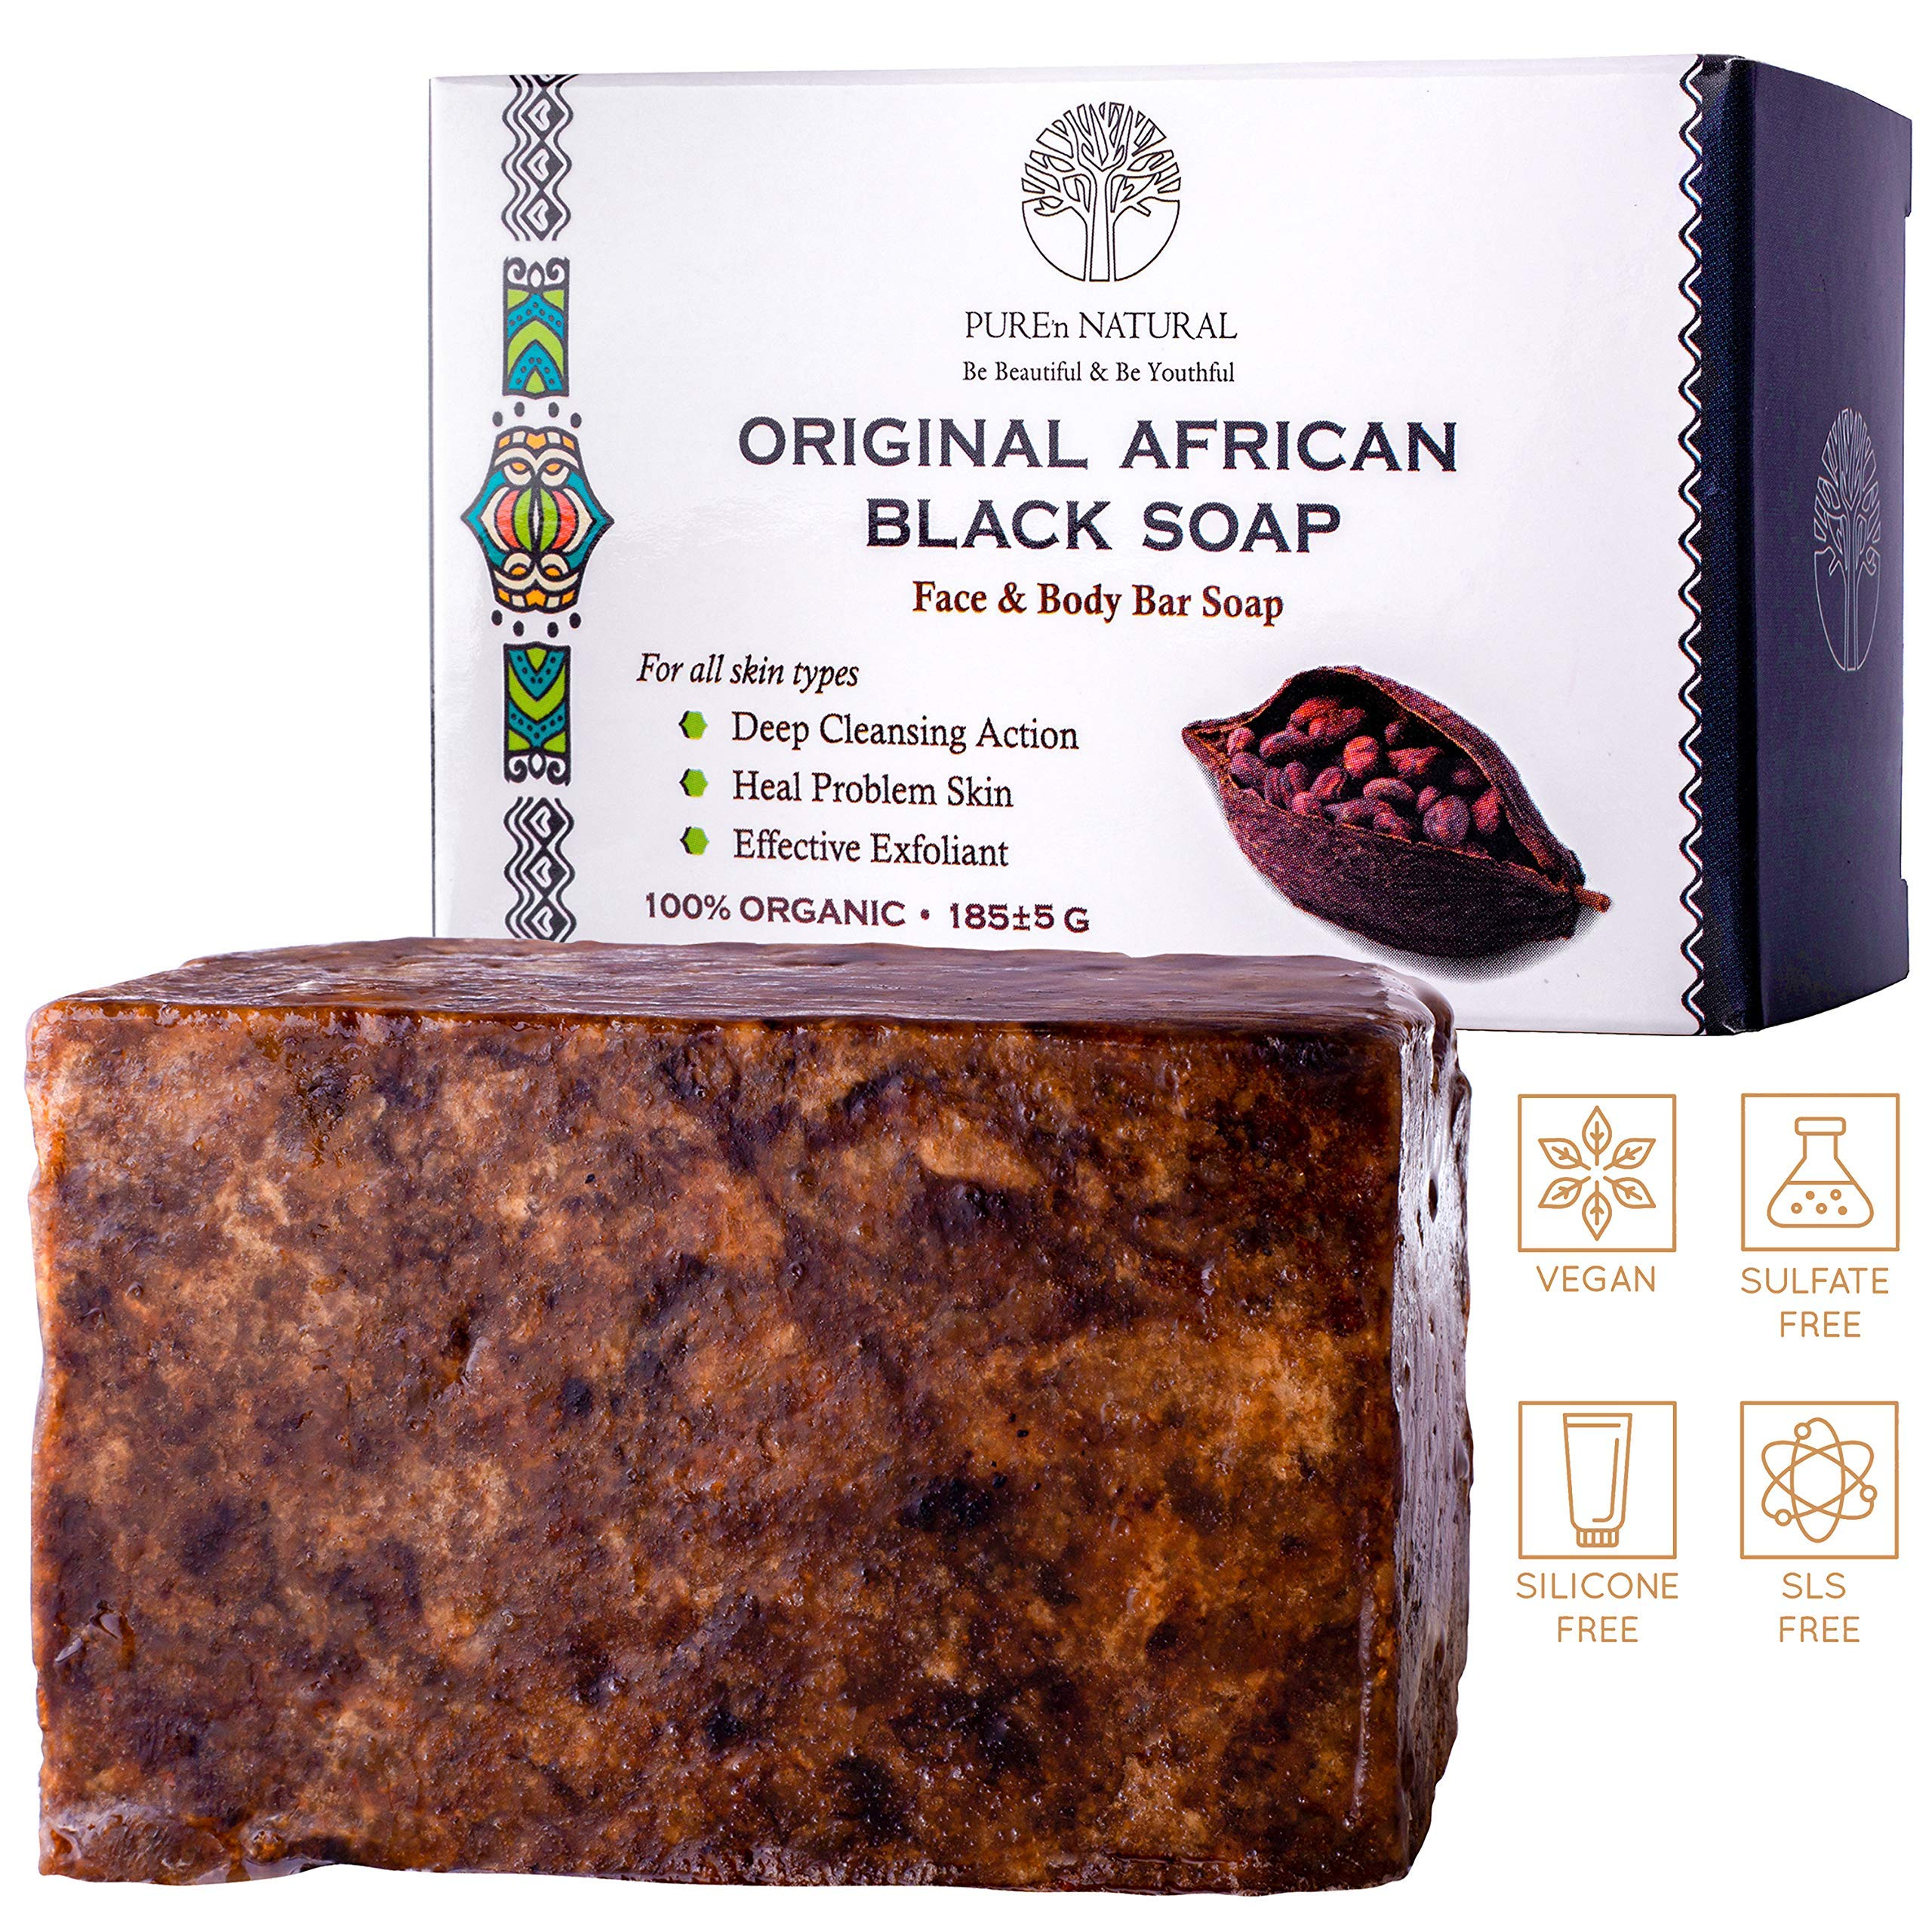 Original Detoxifying African Black Soap – For All Skin Types, Face & Body Wash – Nature's cure for problematic skin - Ideal for Dry Skin, Acne, Eczema, Psoriasis, Rashes, Rosacea